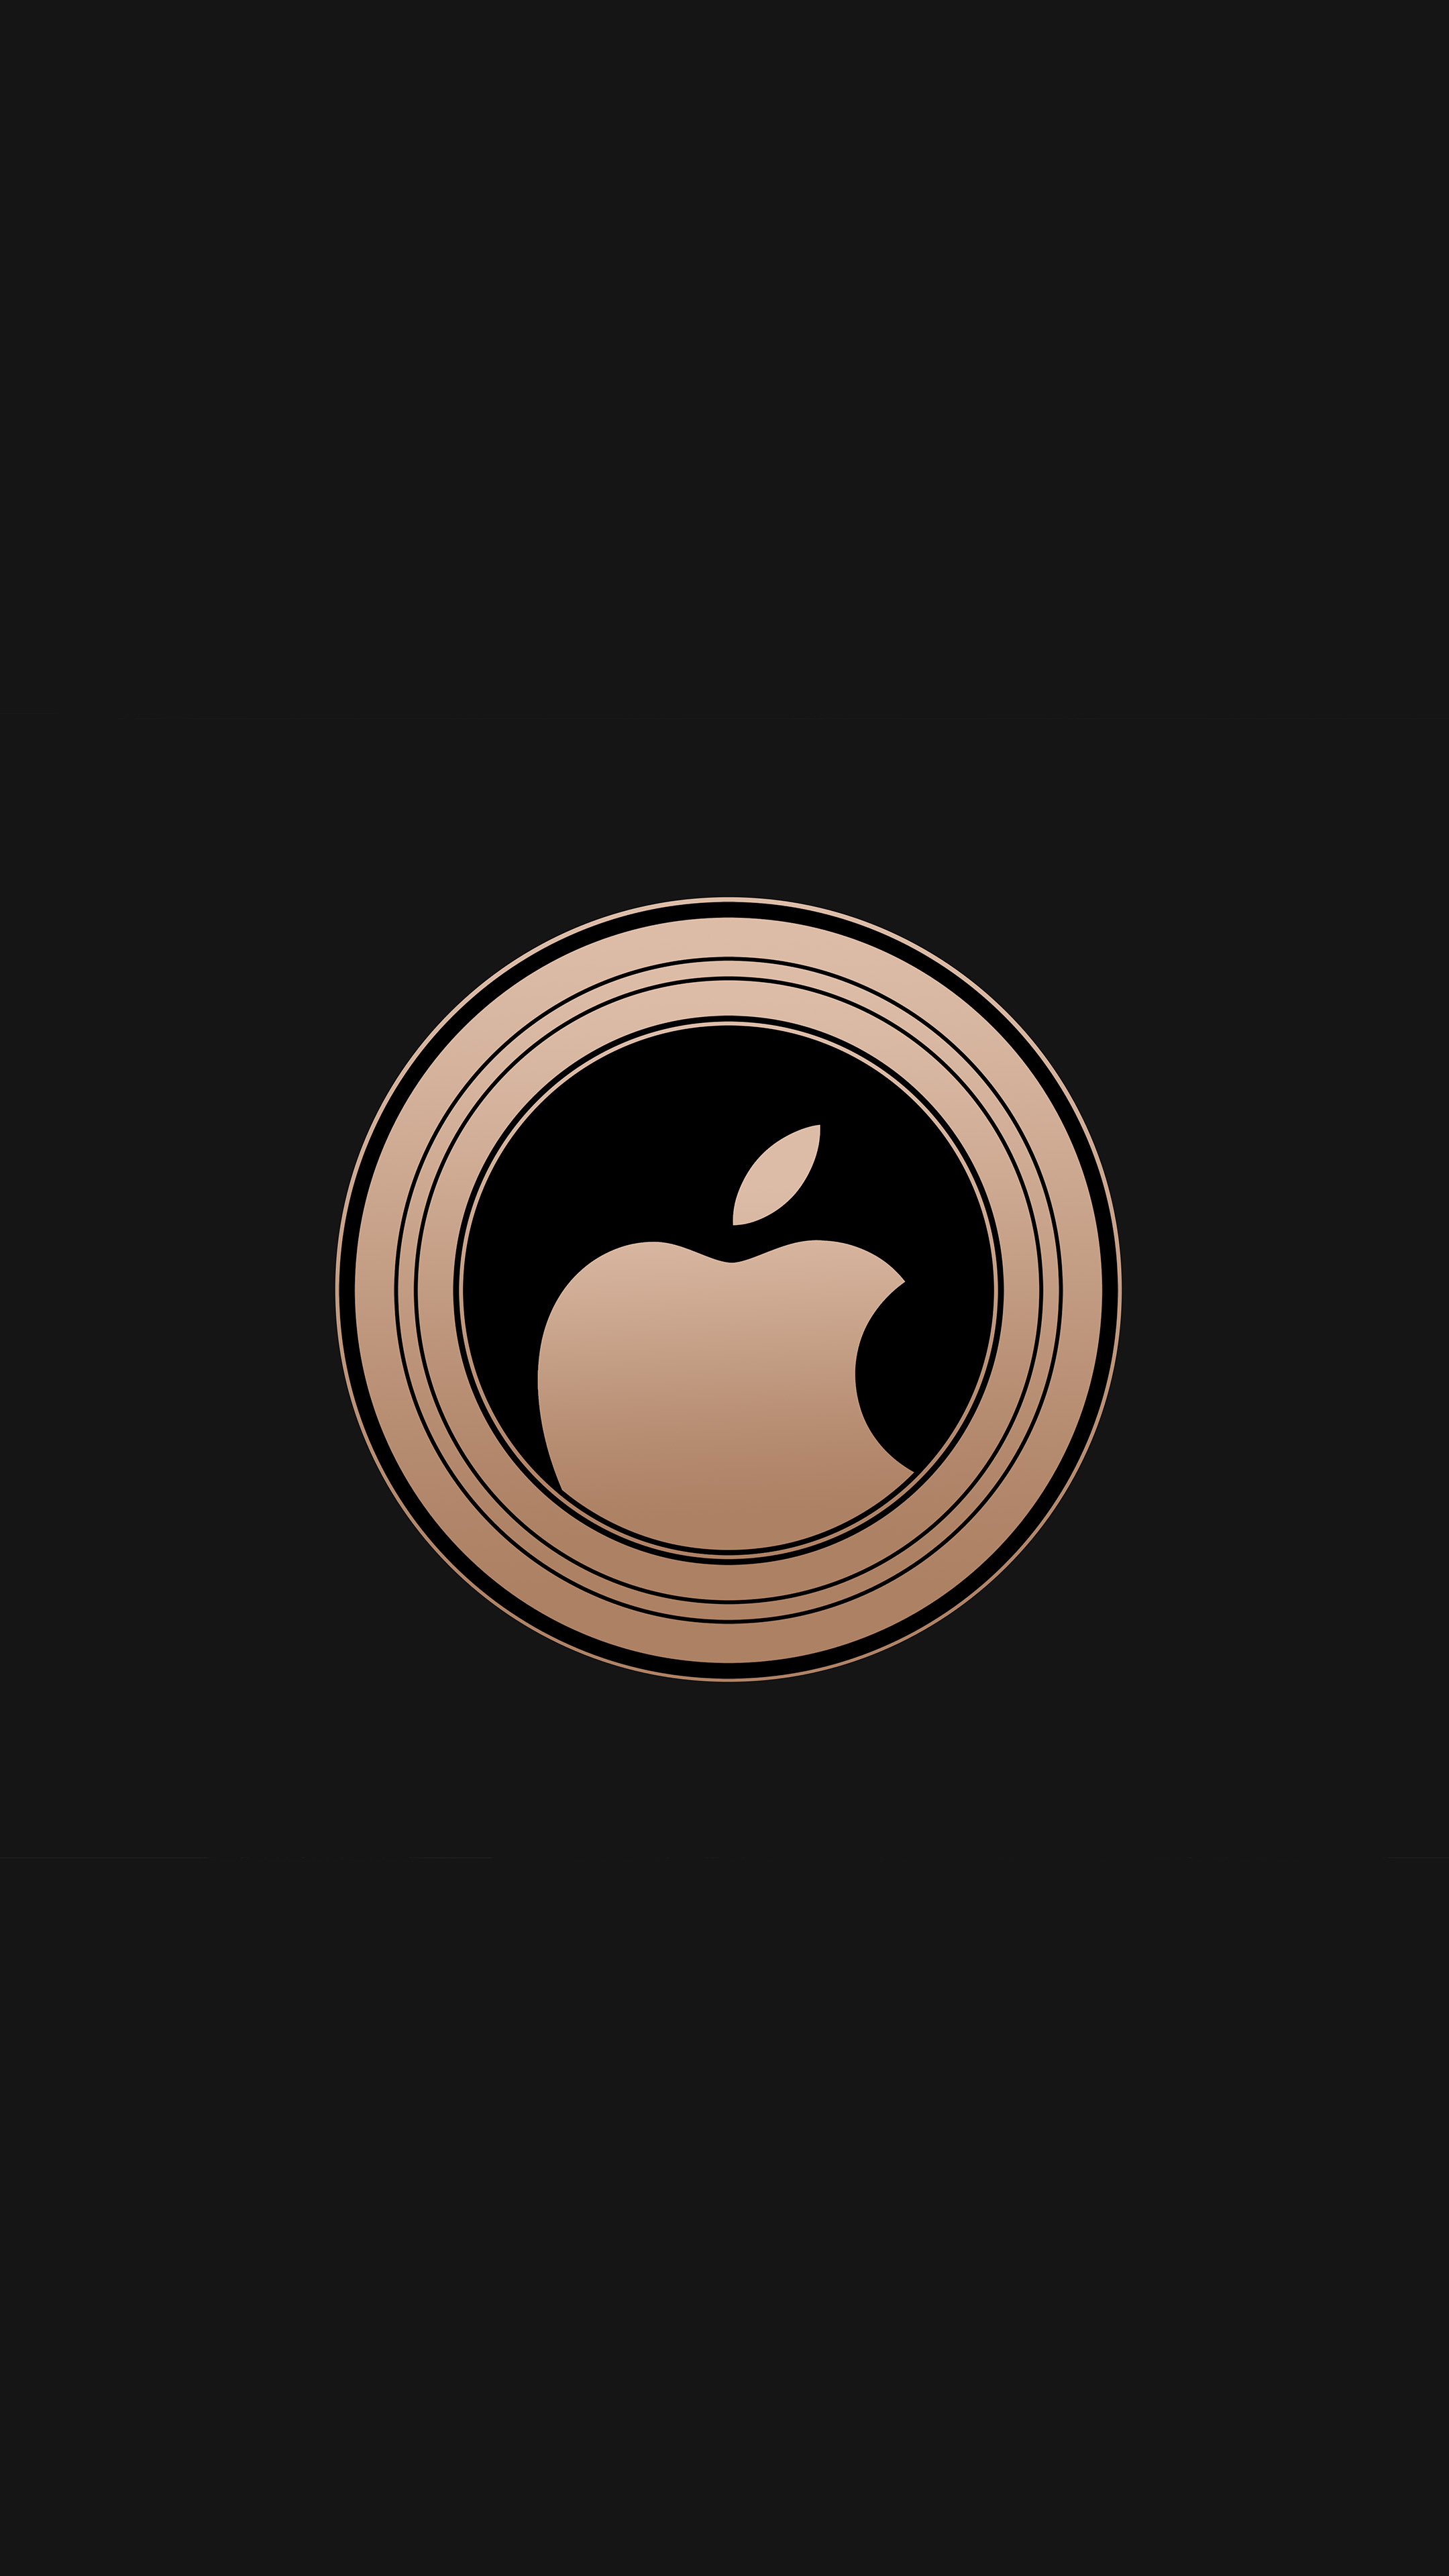 Download Apple Logo Iphone Xs Free Pure 4k Ultra Hd Mobile